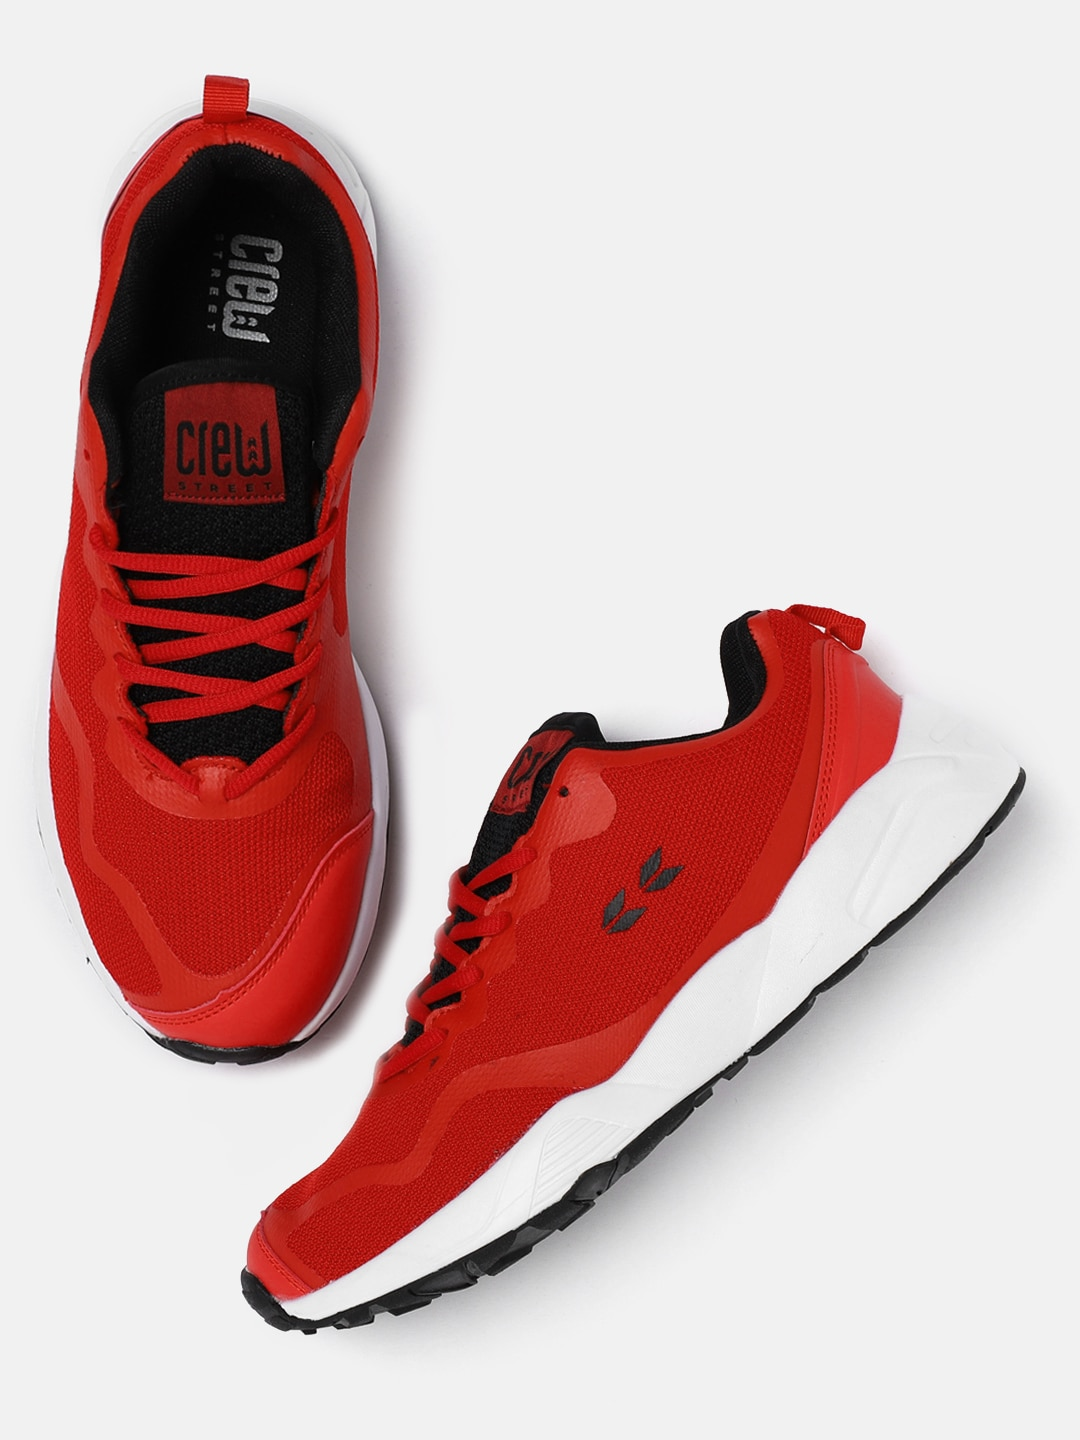 9510489a9fe2 Red Sports Shoes - Buy Red Sports Shoes online in India